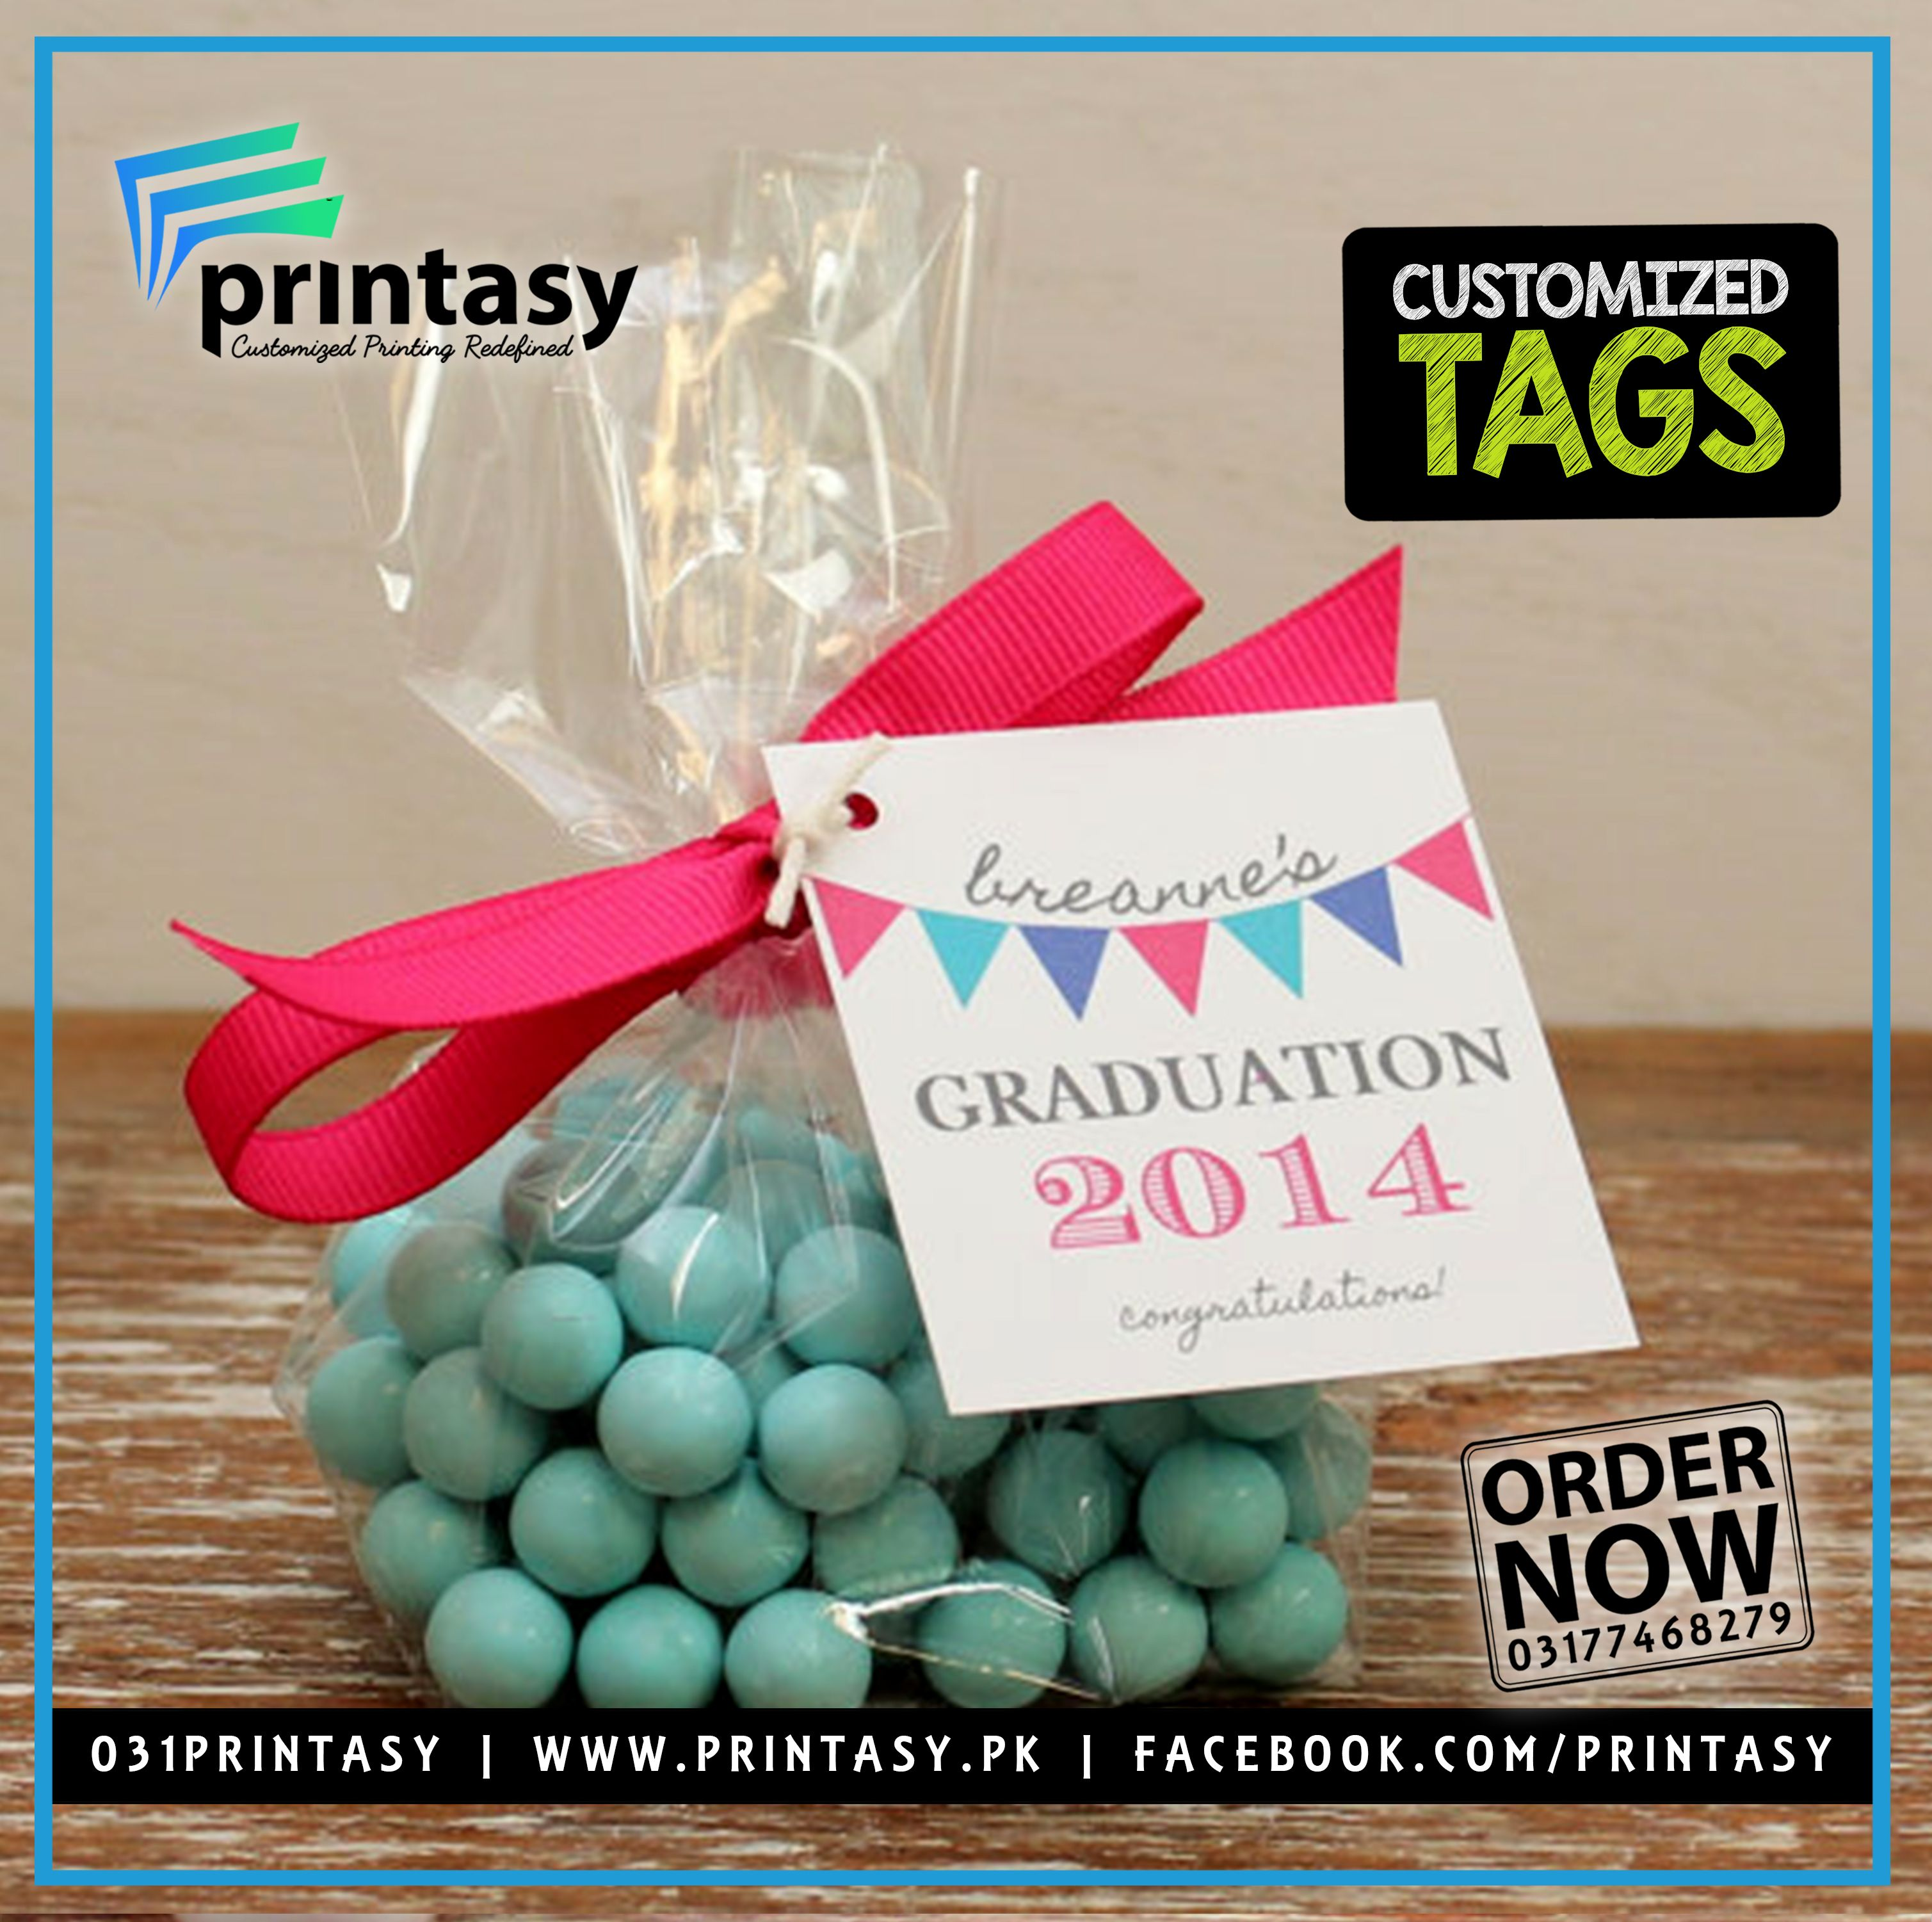 Buy Customized Product Tags at special discount prices and